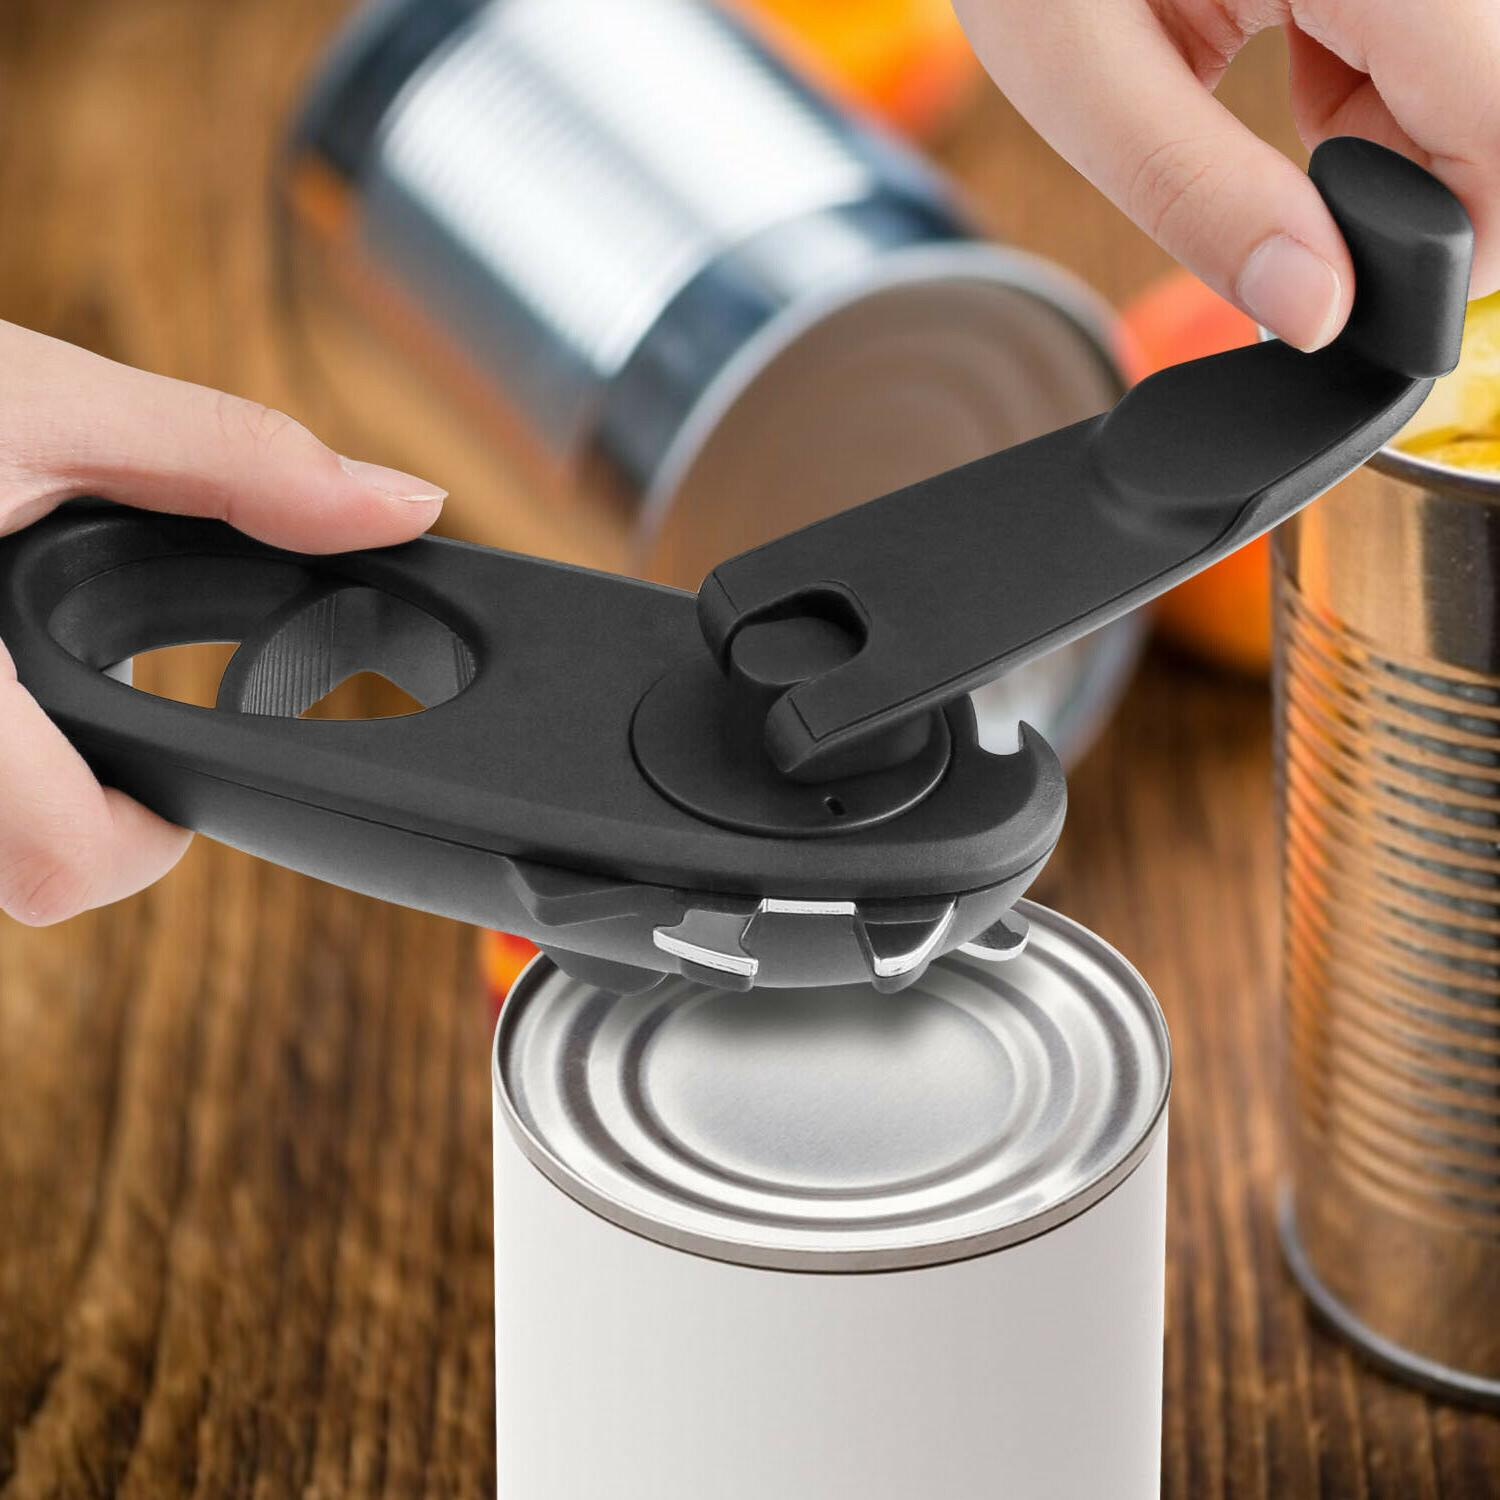 8in1 Opener Safety Manual Opener Smooth Edge Kitchen Tool